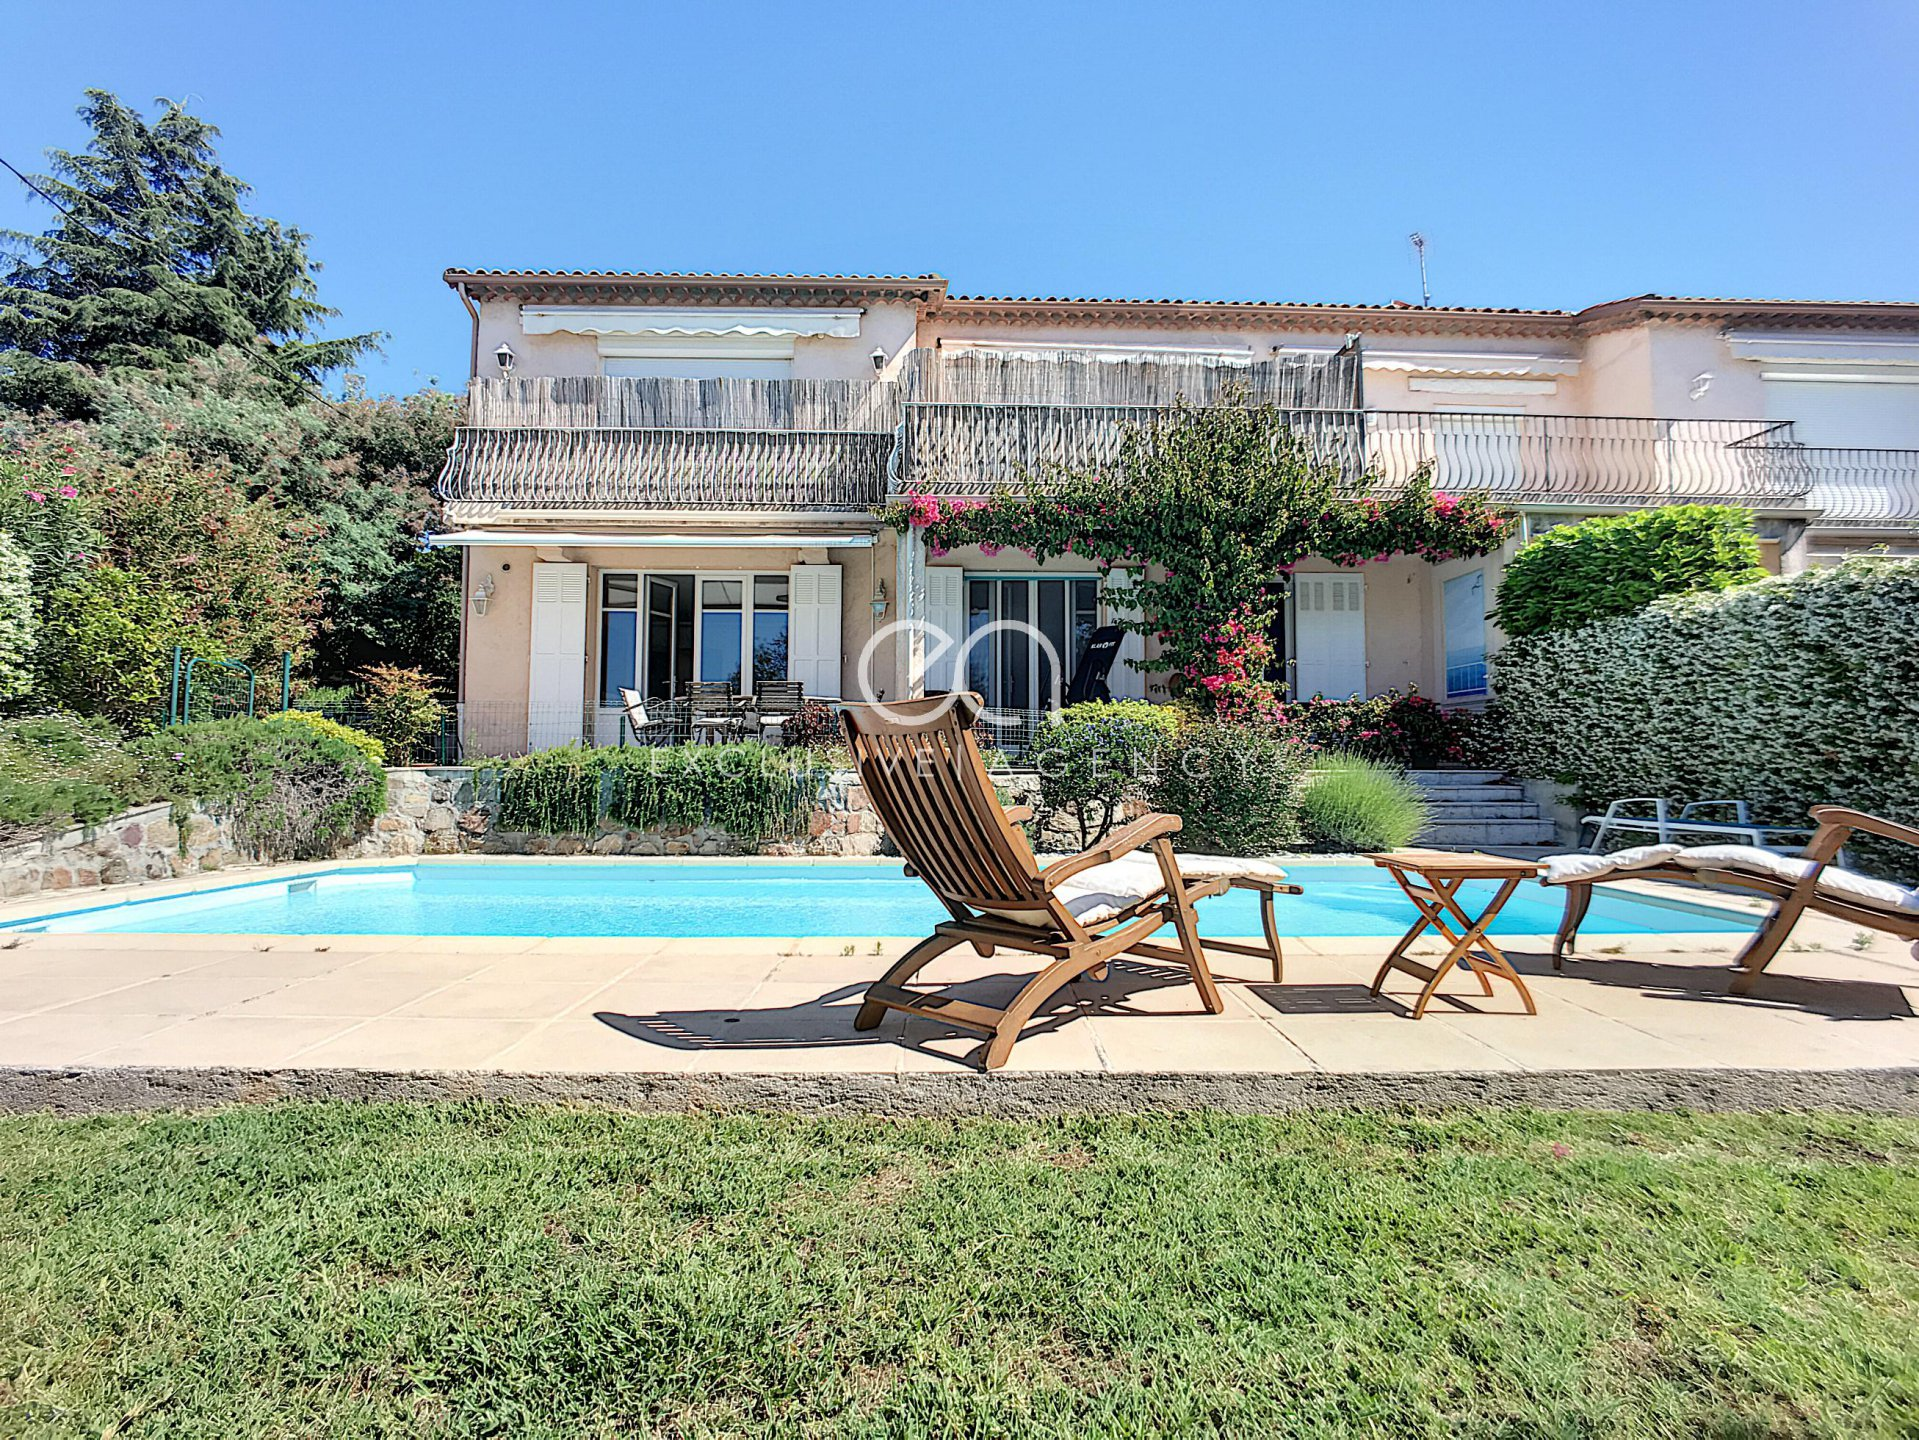 Cannes Bas Croix des Gardes - 3 Bedrooms apartment of 130m with garden and swimming pool